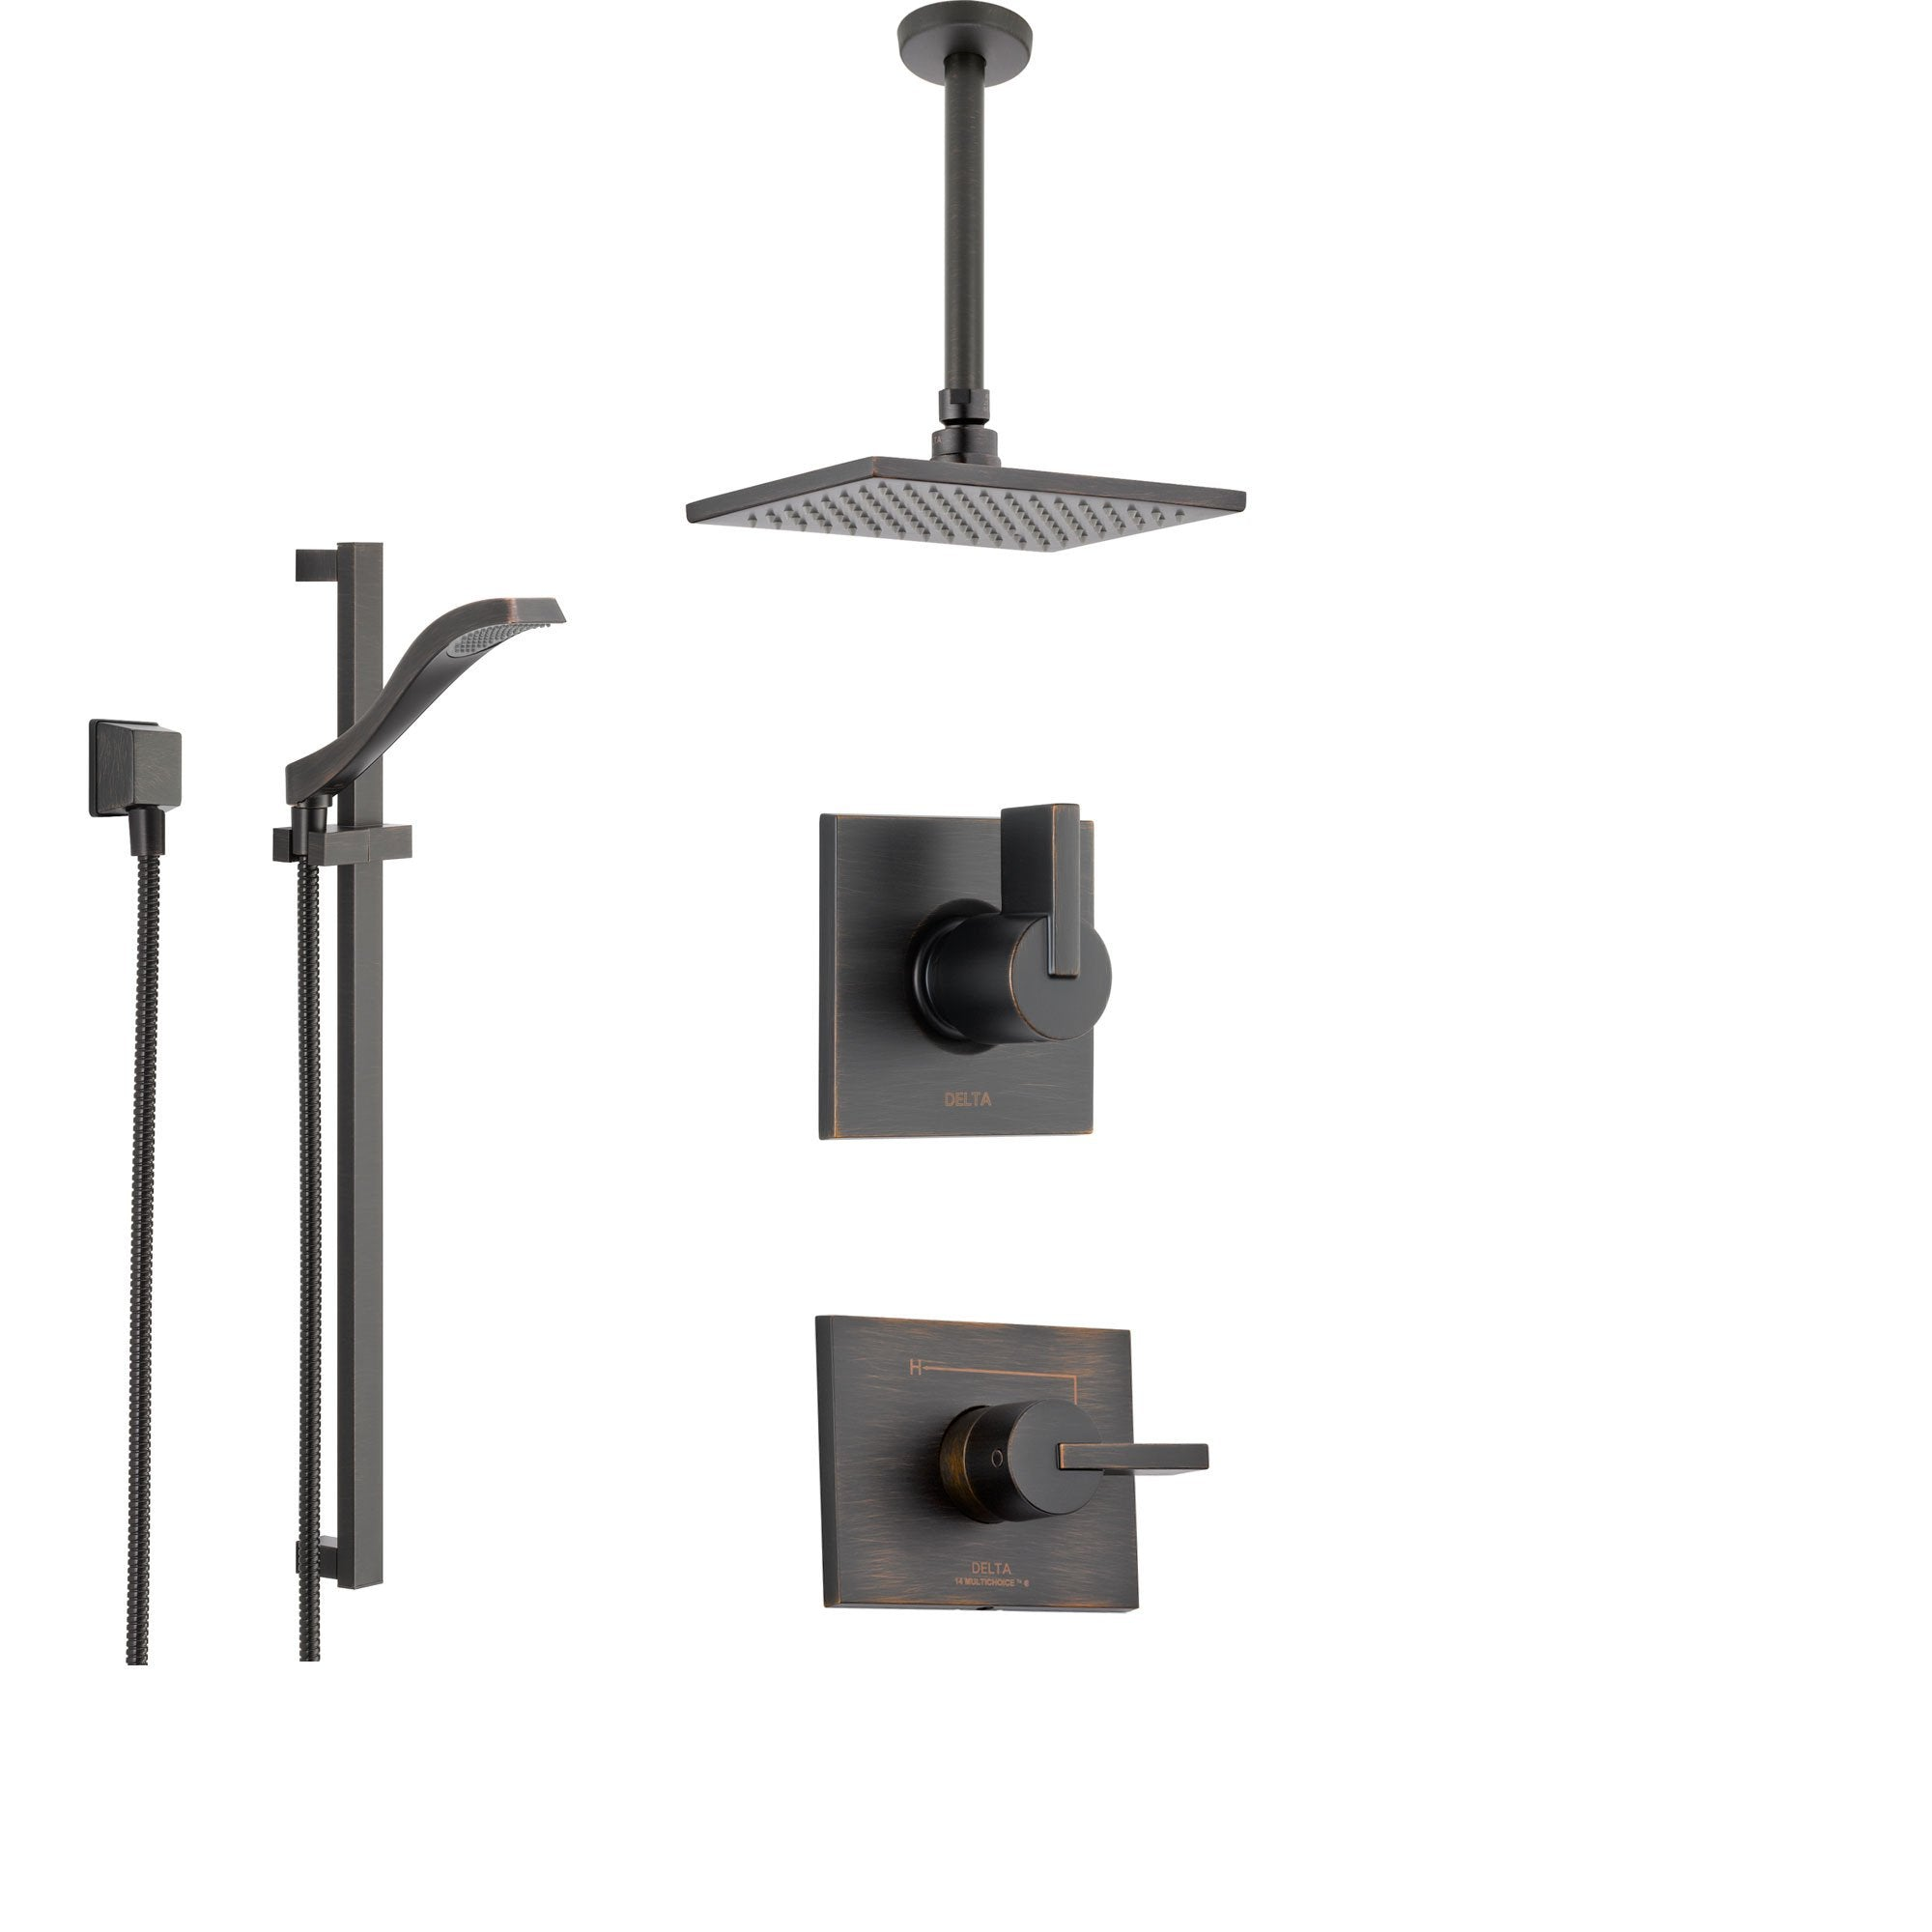 Ceiling Mount Rain Showerhead And Handheld Shower Ss145383rb Delta Vero  Venetian Bronze System With Normal Handle